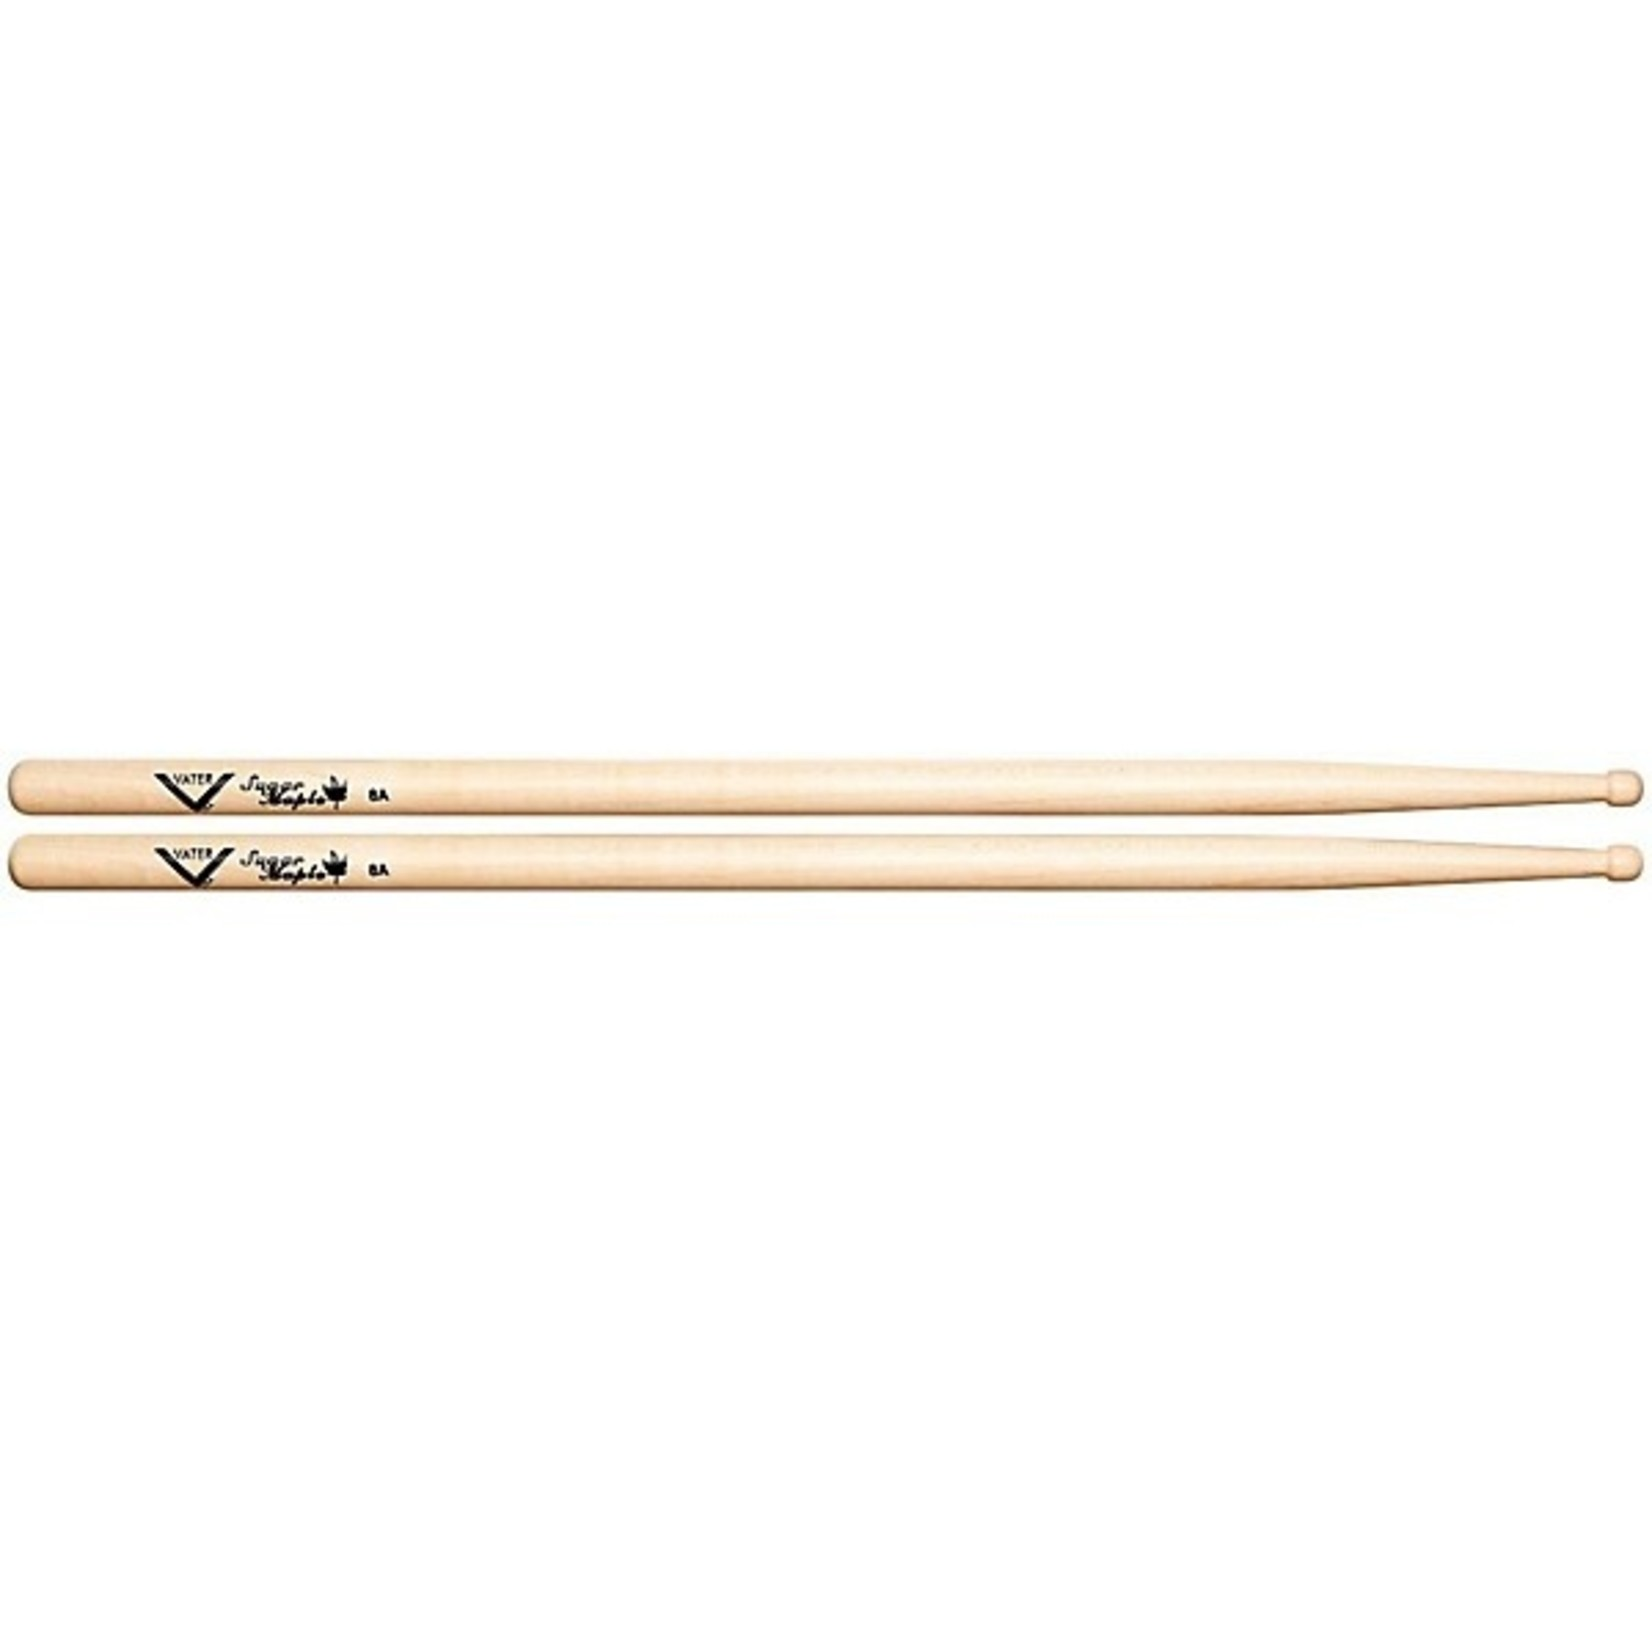 Vater Vater Sugar Maple 8A